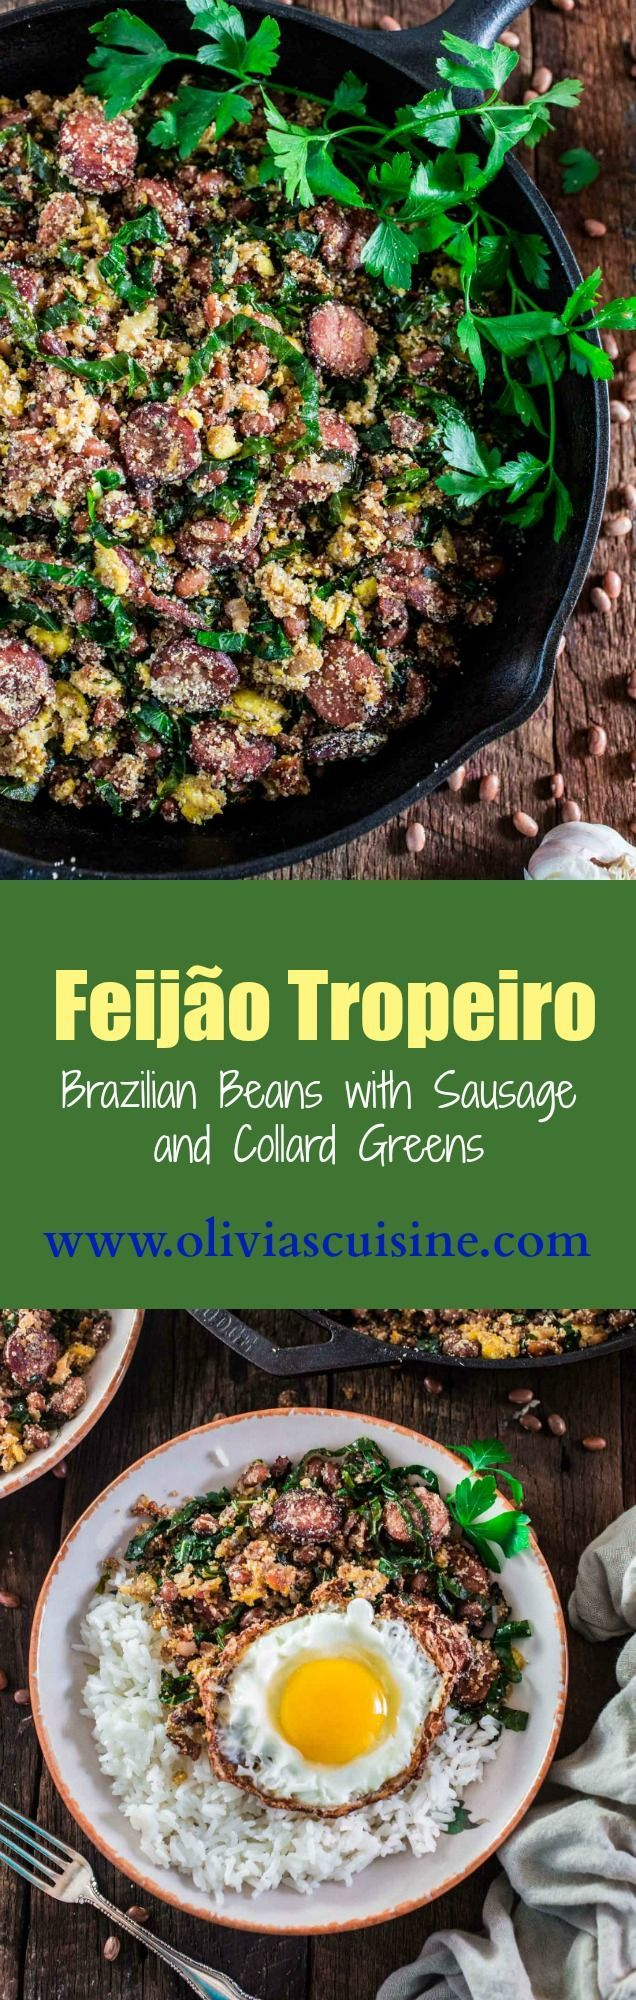 Feijão Tropeiro (Brazilian Beans with Sausage and Collard Greens) | http://www.oliviascuisine.com | If you like Brazilian food, this one is for you: Feijão Tropeiro. A traditional dish from Minas Gerais, made with beans, bacon, sausage, collard greens, eggs and manioc flour.